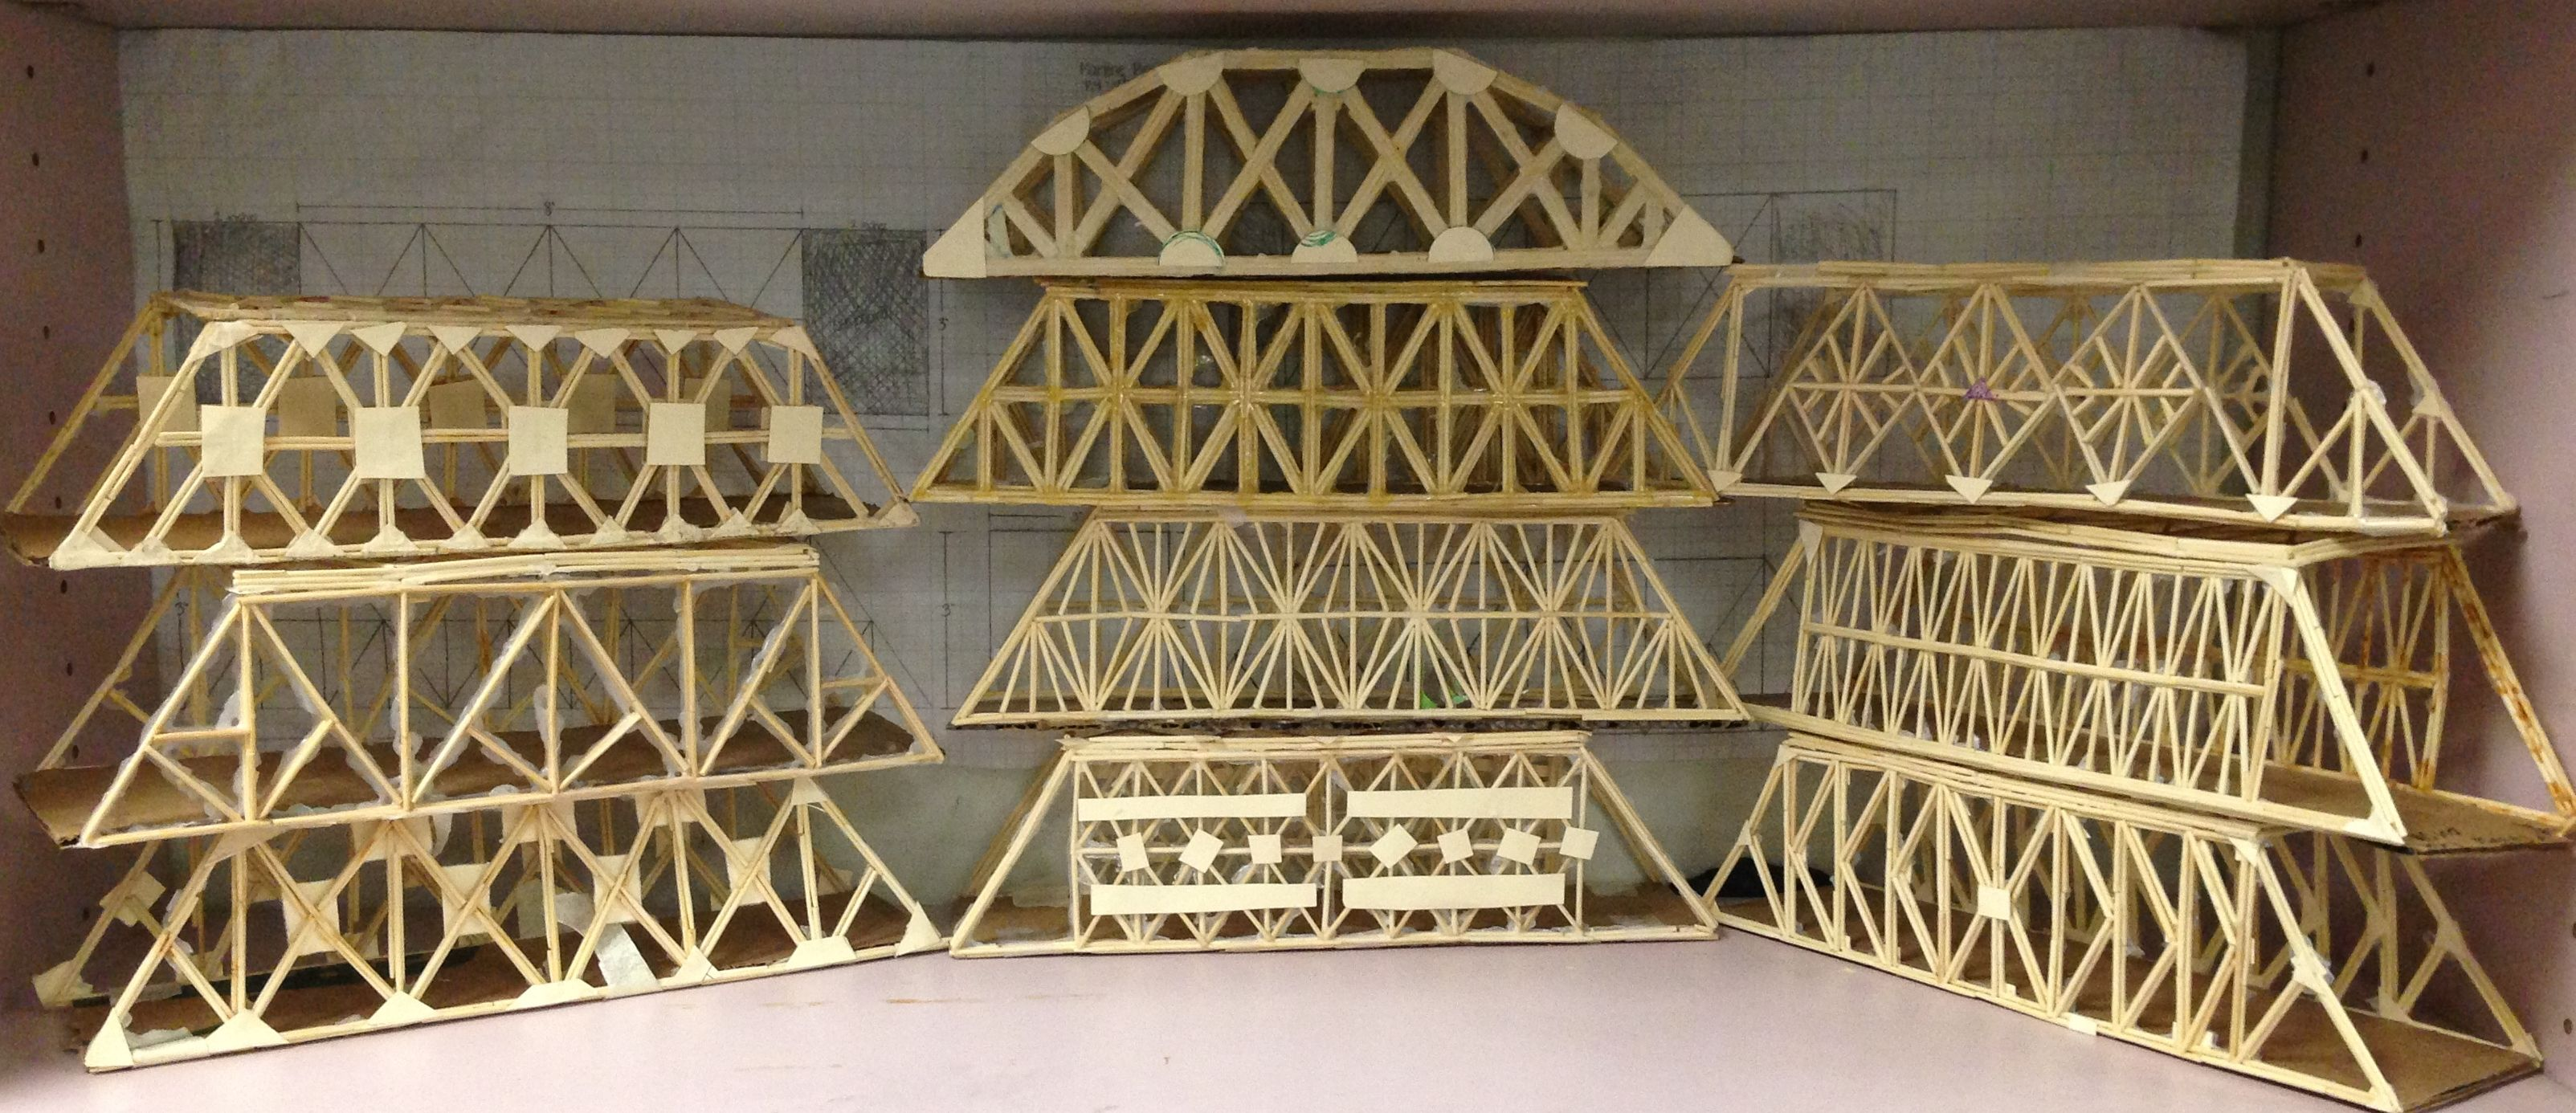 balsa wood bridge strongest design strongest bridge design in the world | Bridges | Pinterest | Bridge ...